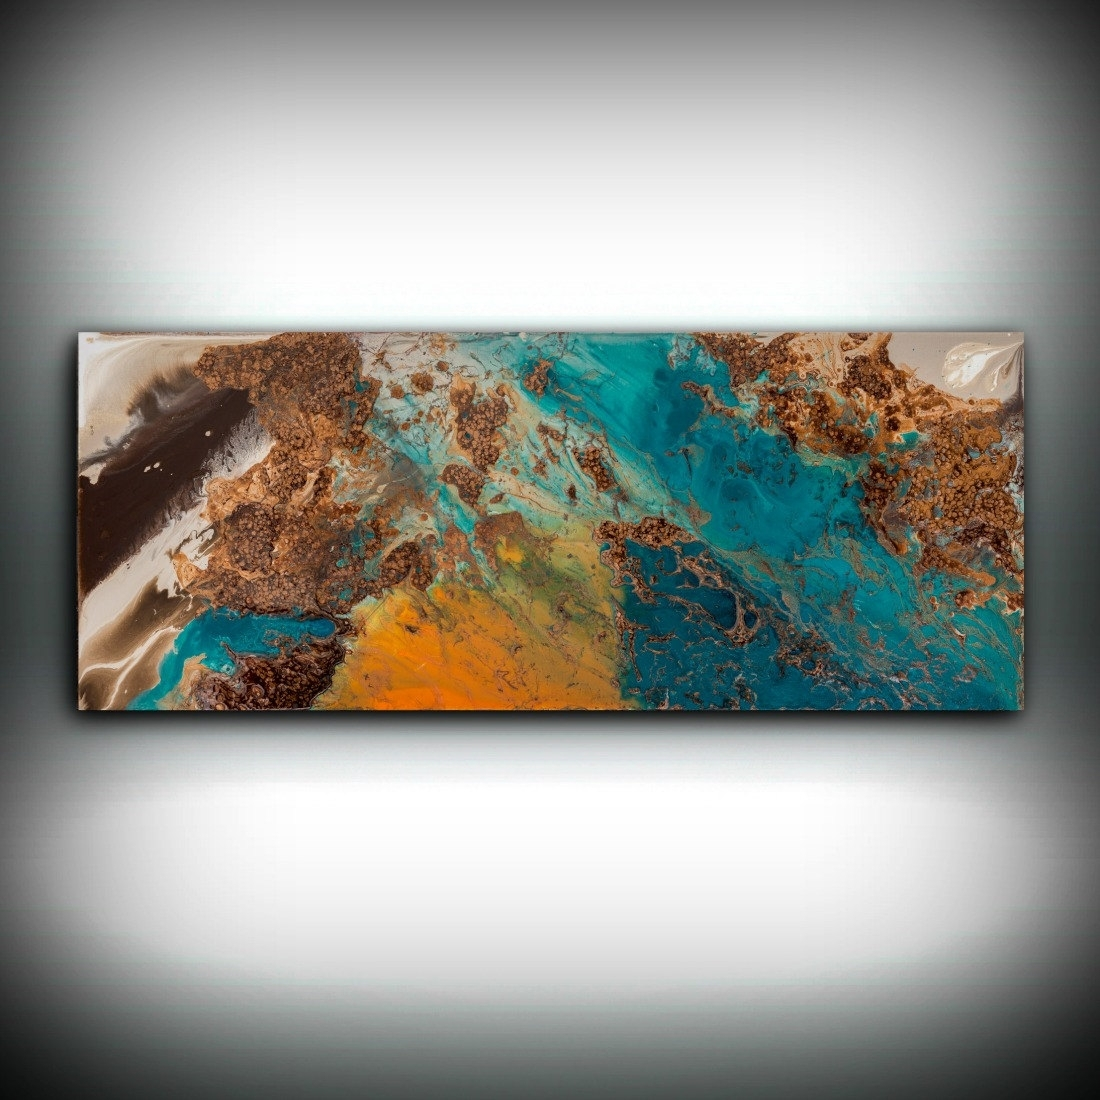 Sale Blue And Copper Art, Wall Art Prints Fine Art Prints Abstract Intended For Most Popular Abstract Outdoor Wall Art (View 14 of 20)